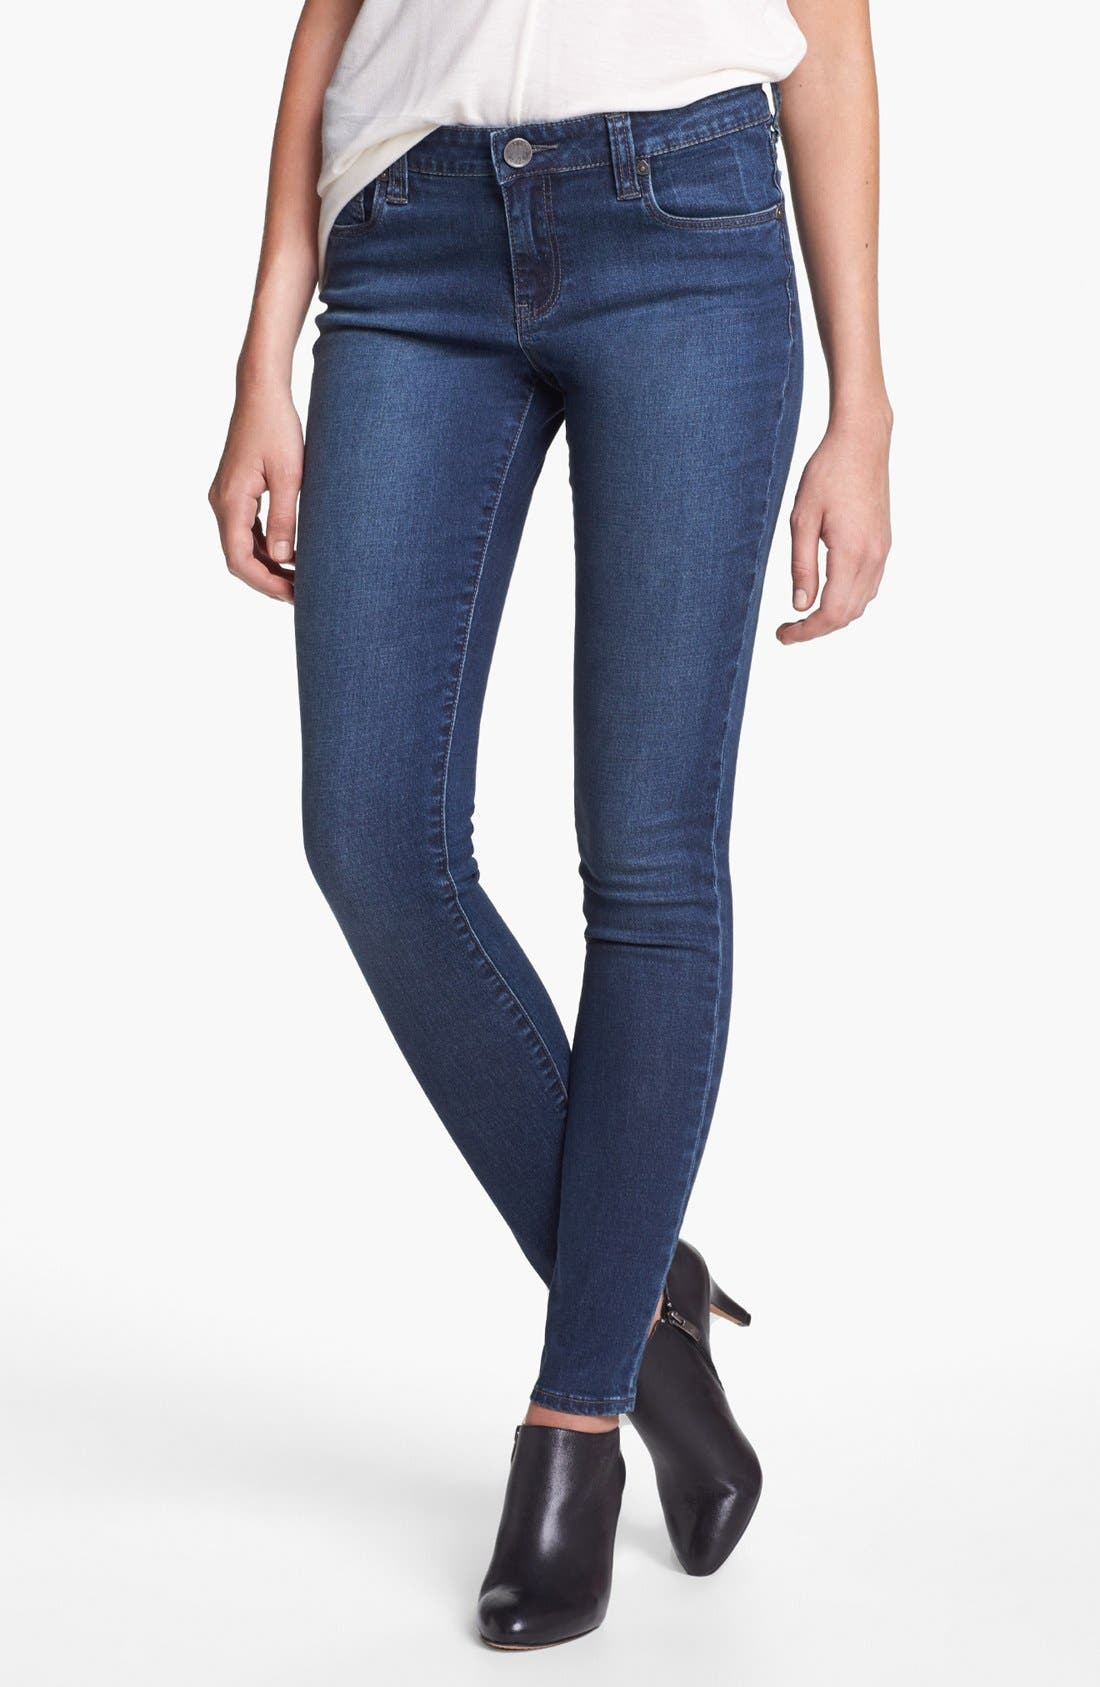 Alternate Image 1 Selected - KUT from the Kloth 'Elle' Skinny Jeans (Healthy)